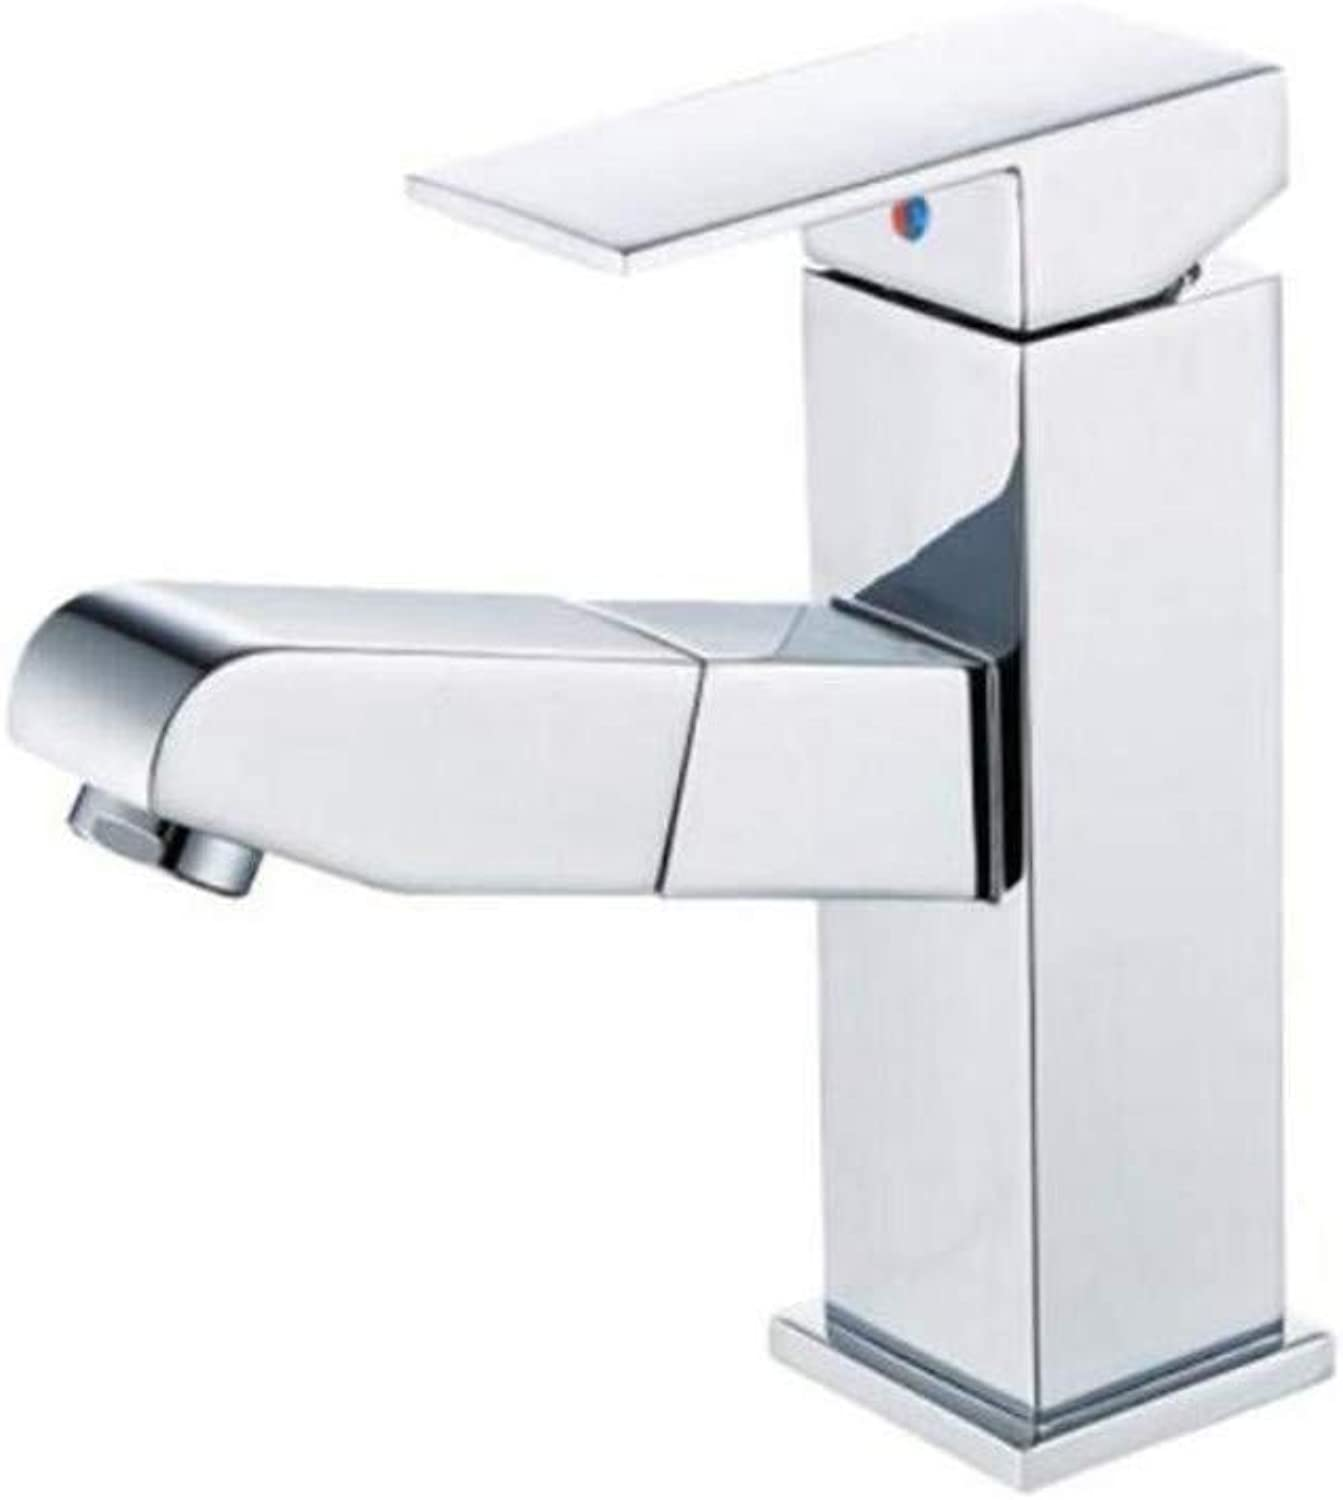 Taps Kitchen Sinktaps Mixer Swivel Faucet Sink Face Basin Faucet Cold and Hot Single Hole Pull Faucet